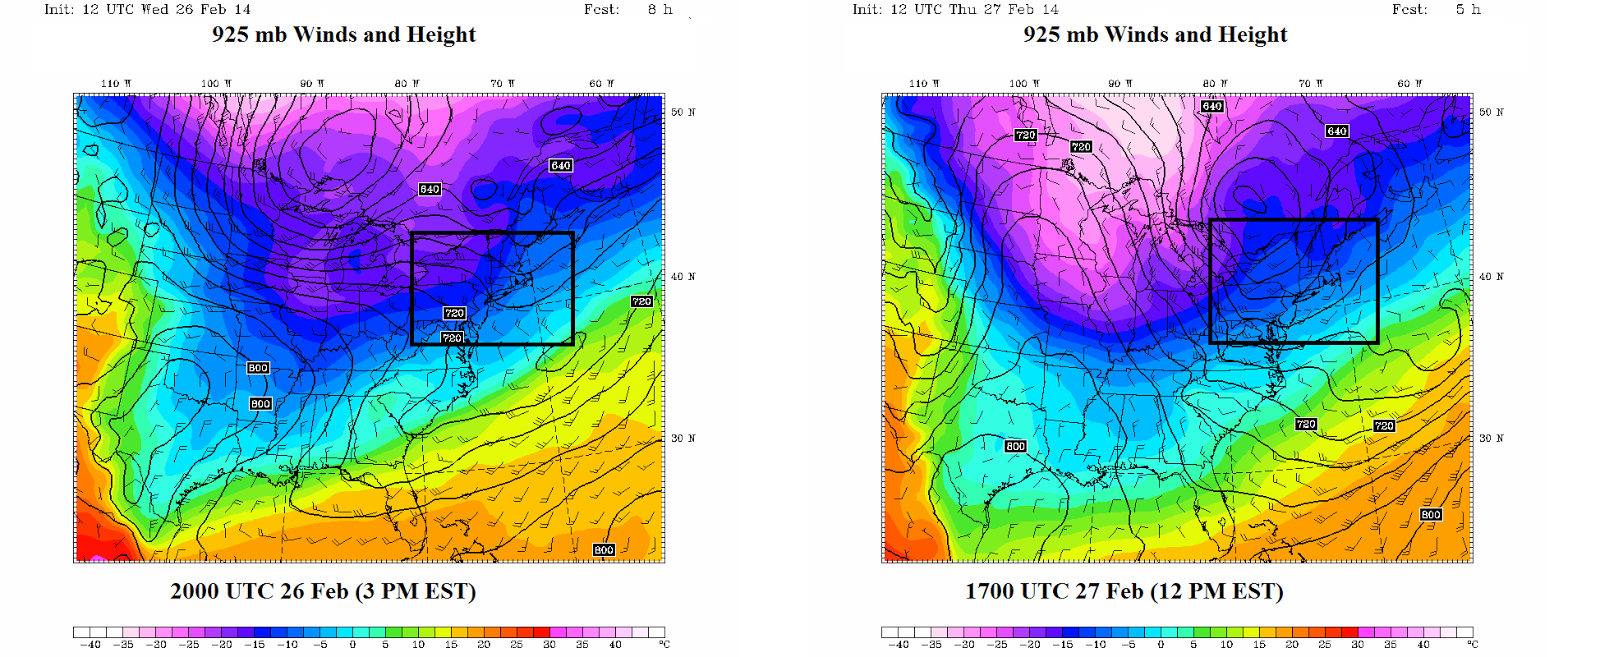 left wednesday february 26th at 3 pm and right thursday february 27th at 12 pm showing 925 mb temperatures shaded and a box highlighting our region